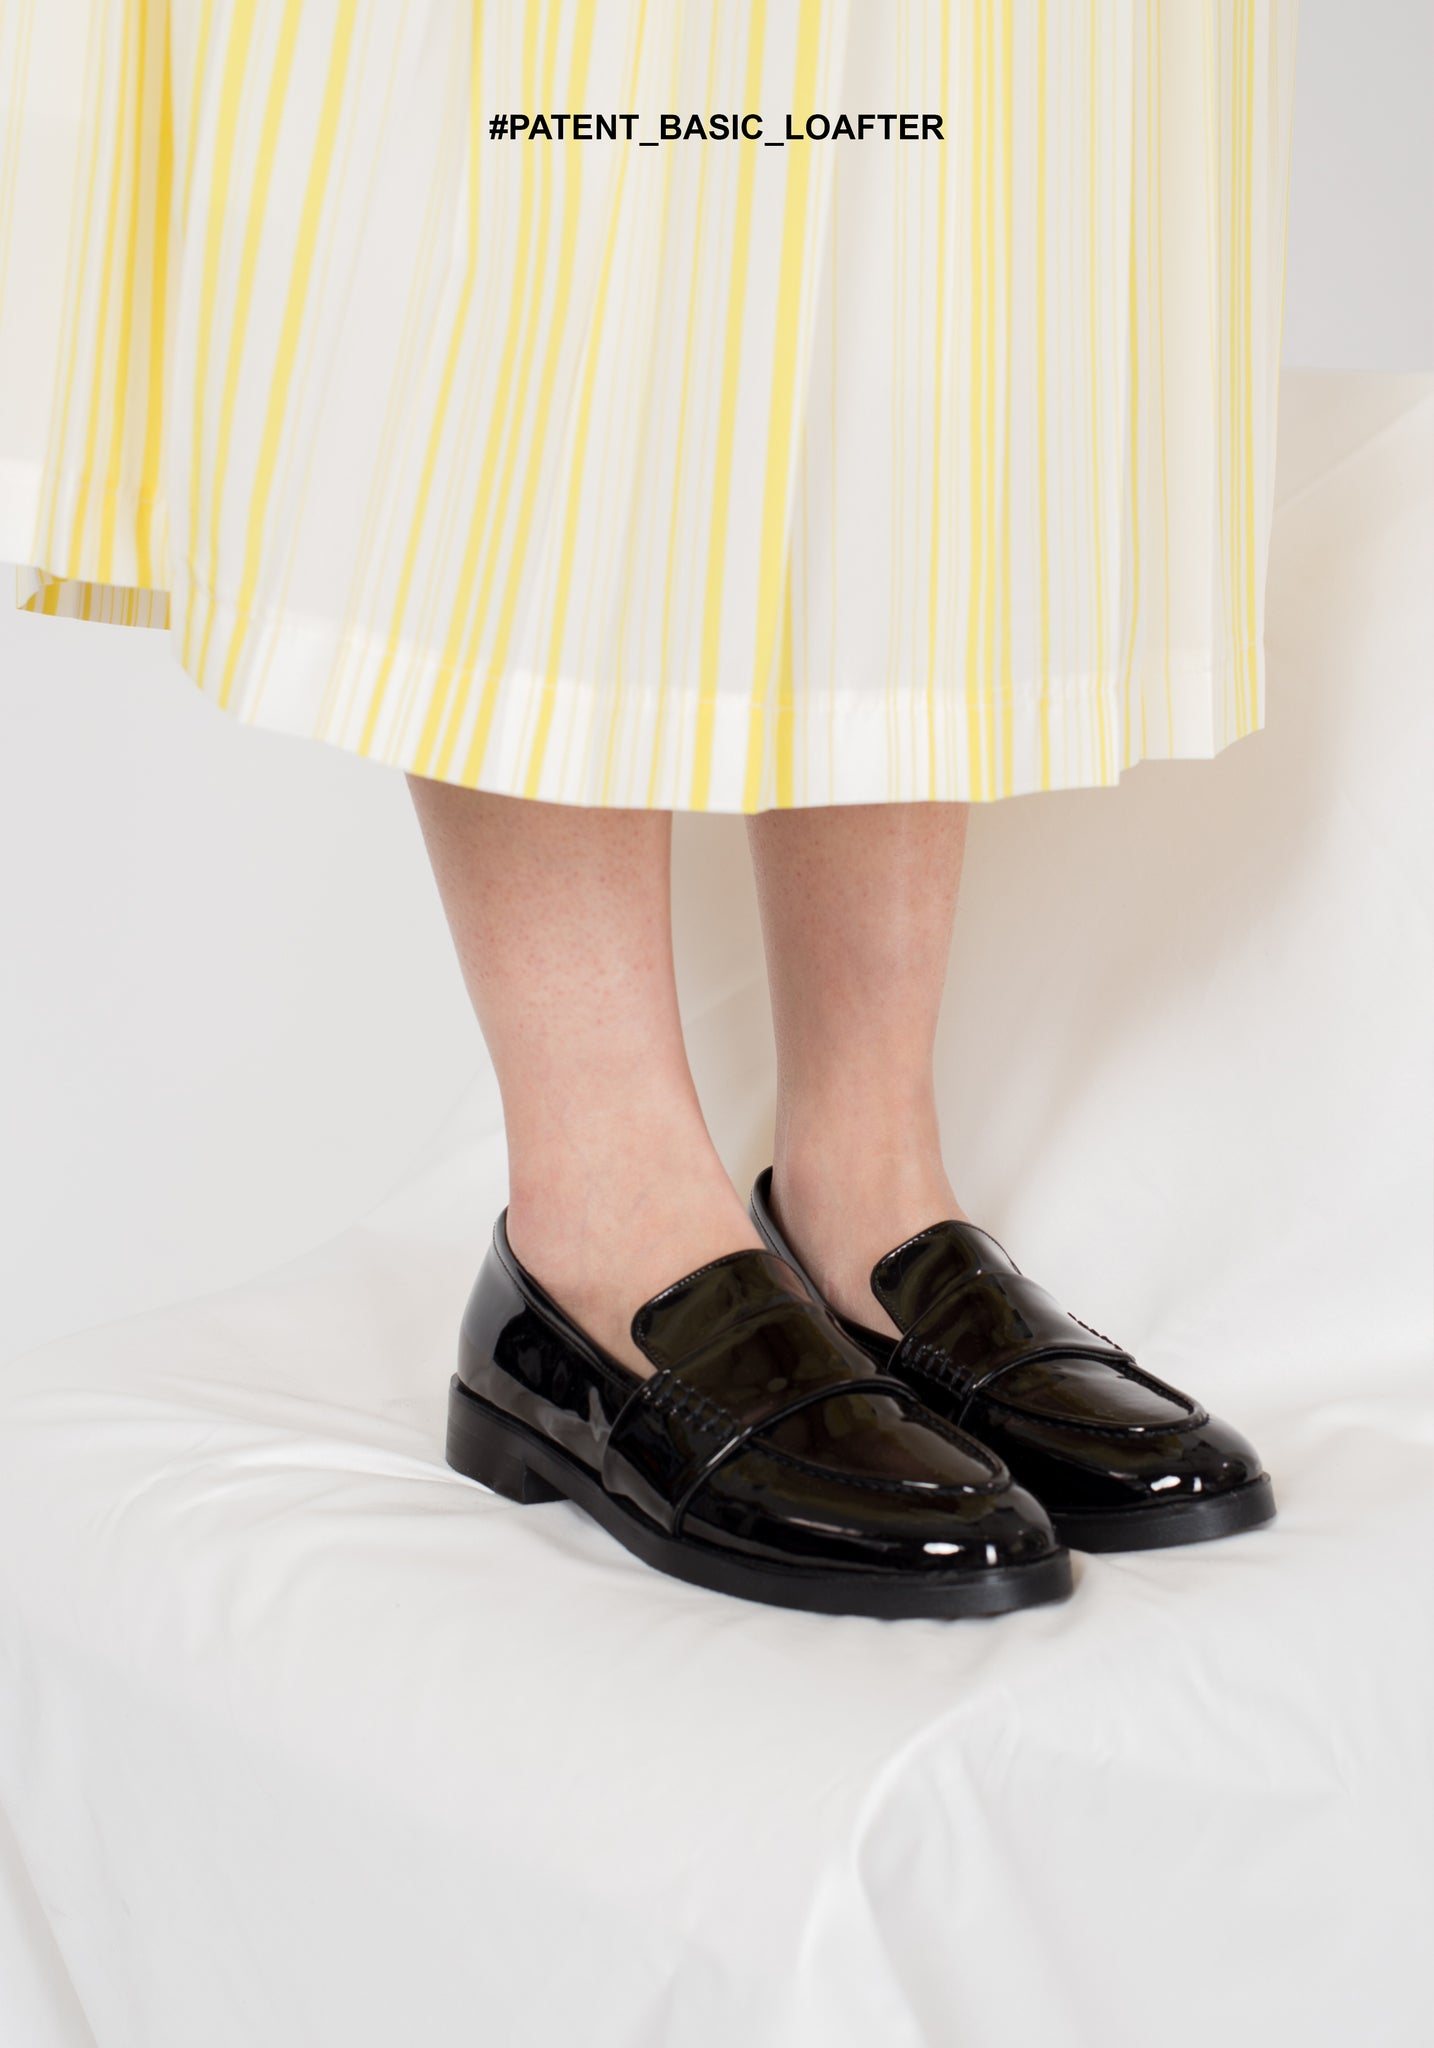 Patent Basic Loafer